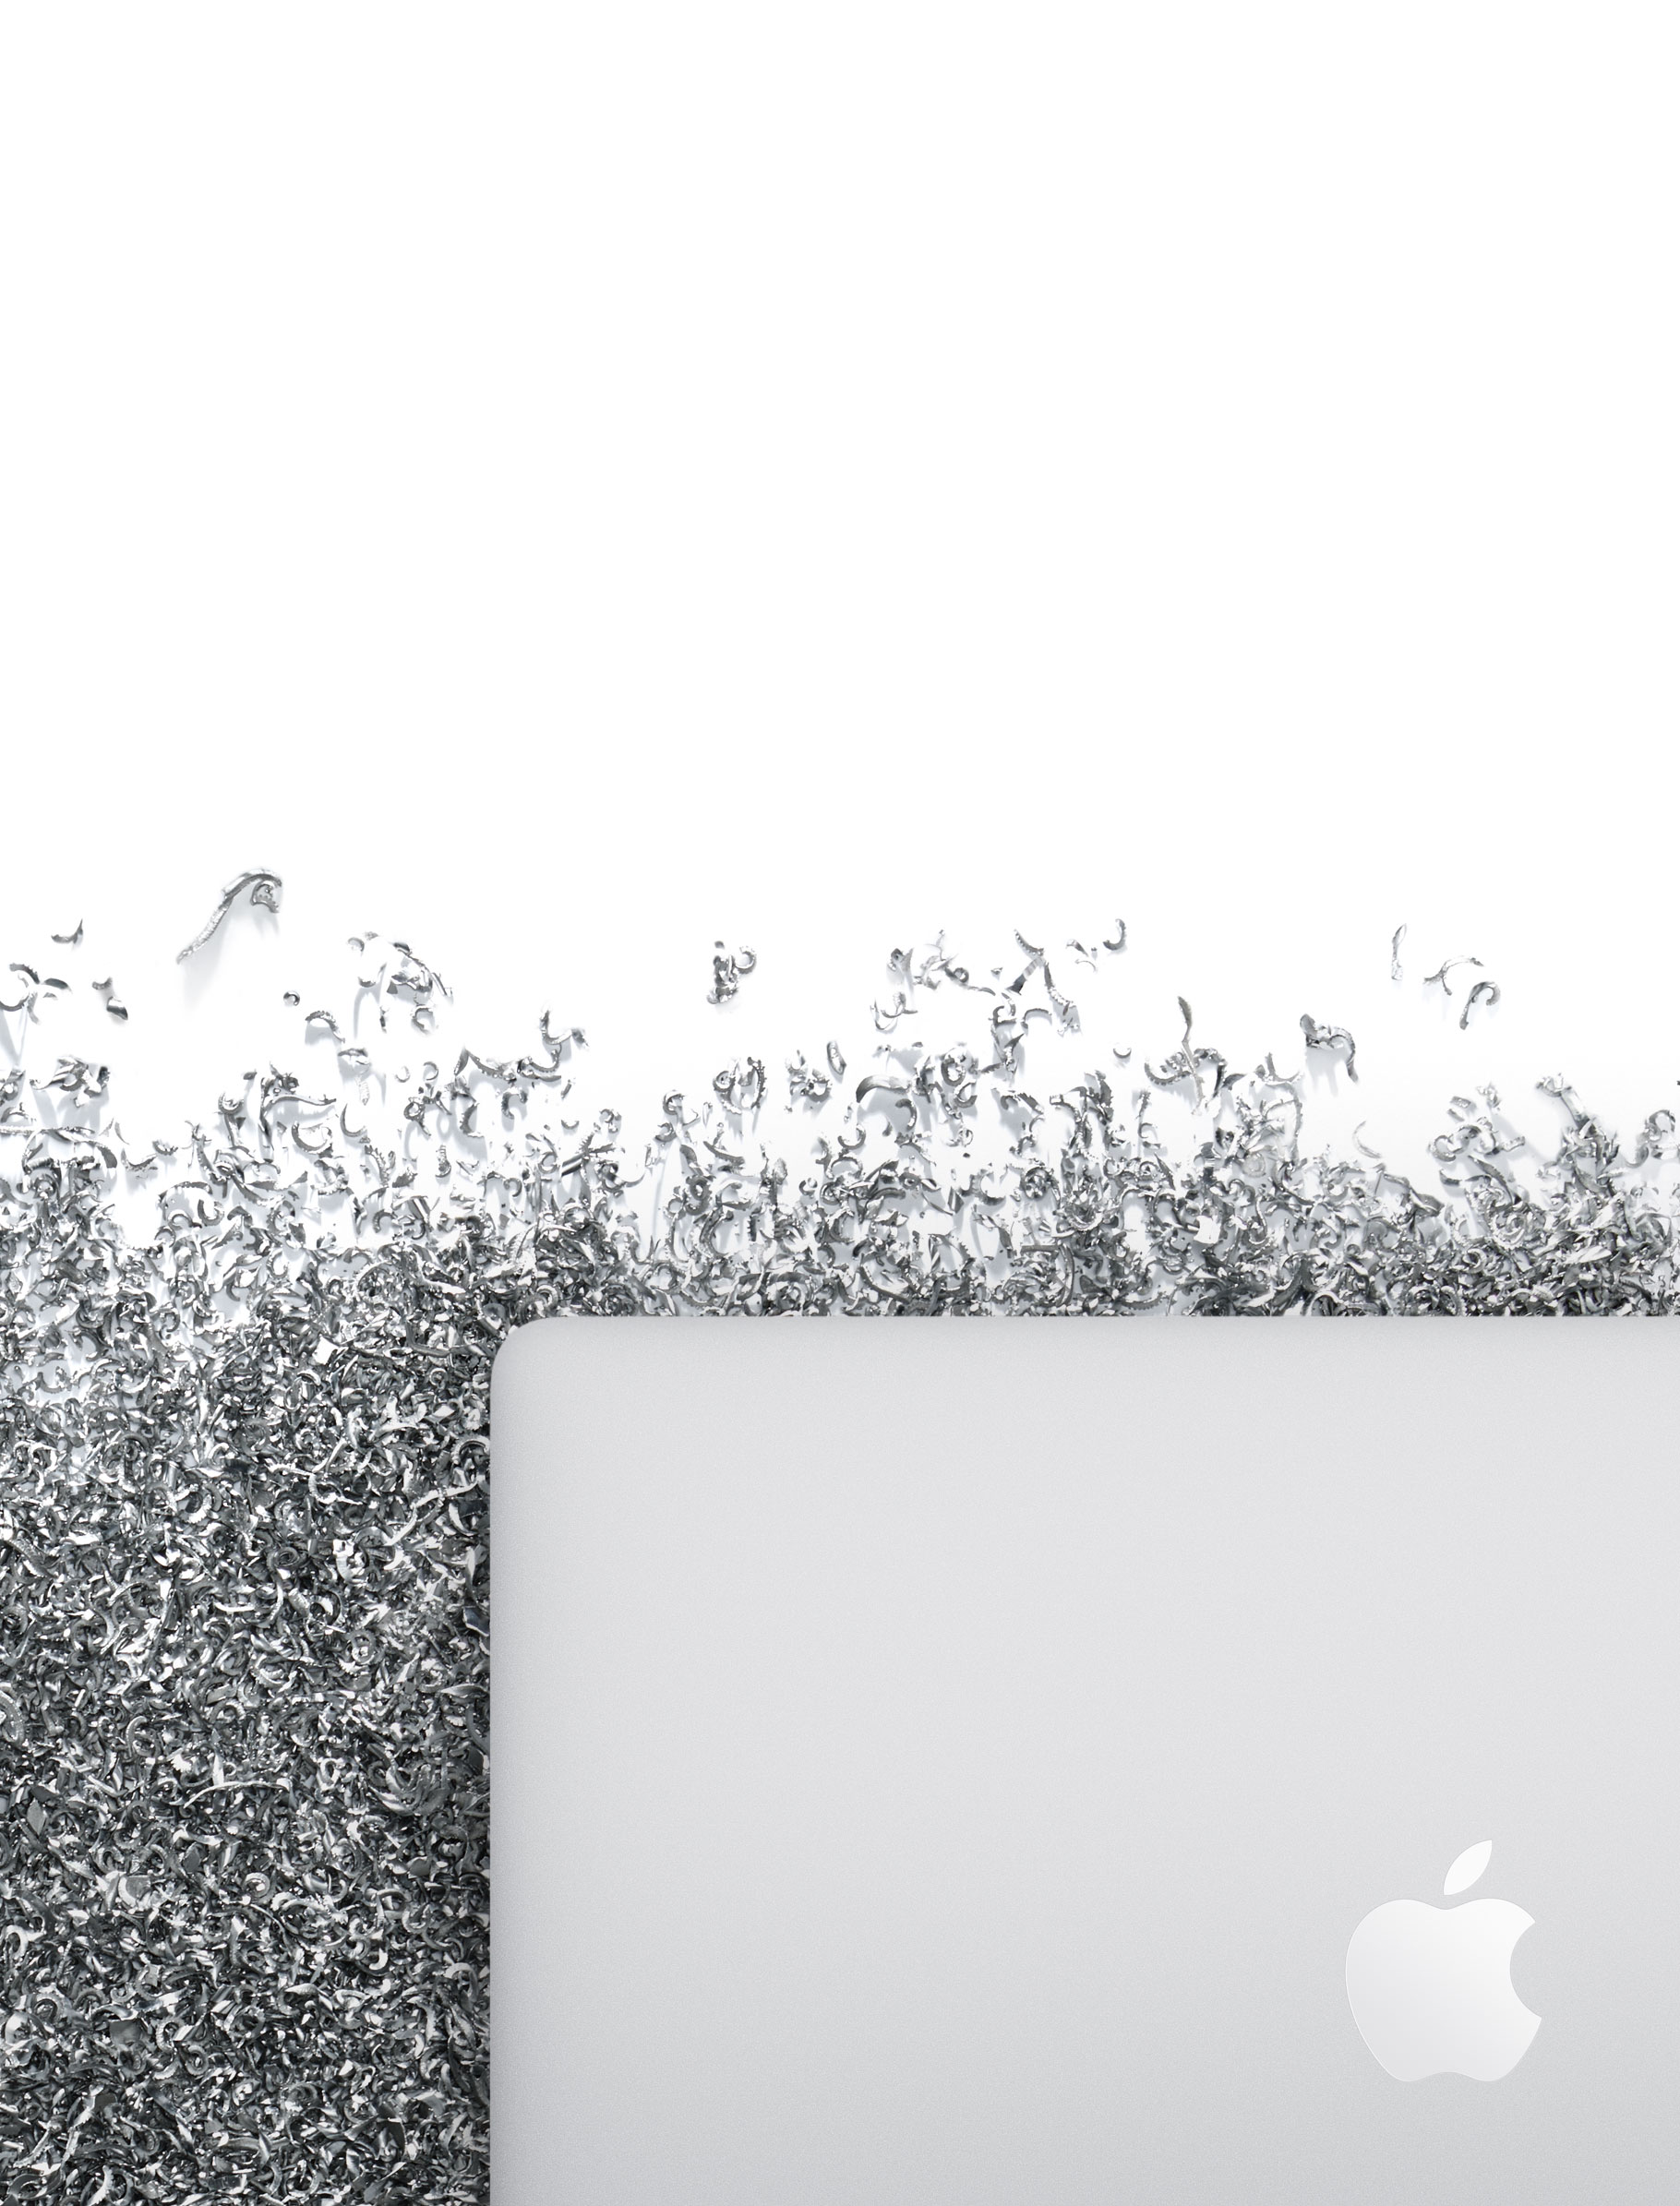 MacBook Pro surrounded by aluminum shavings